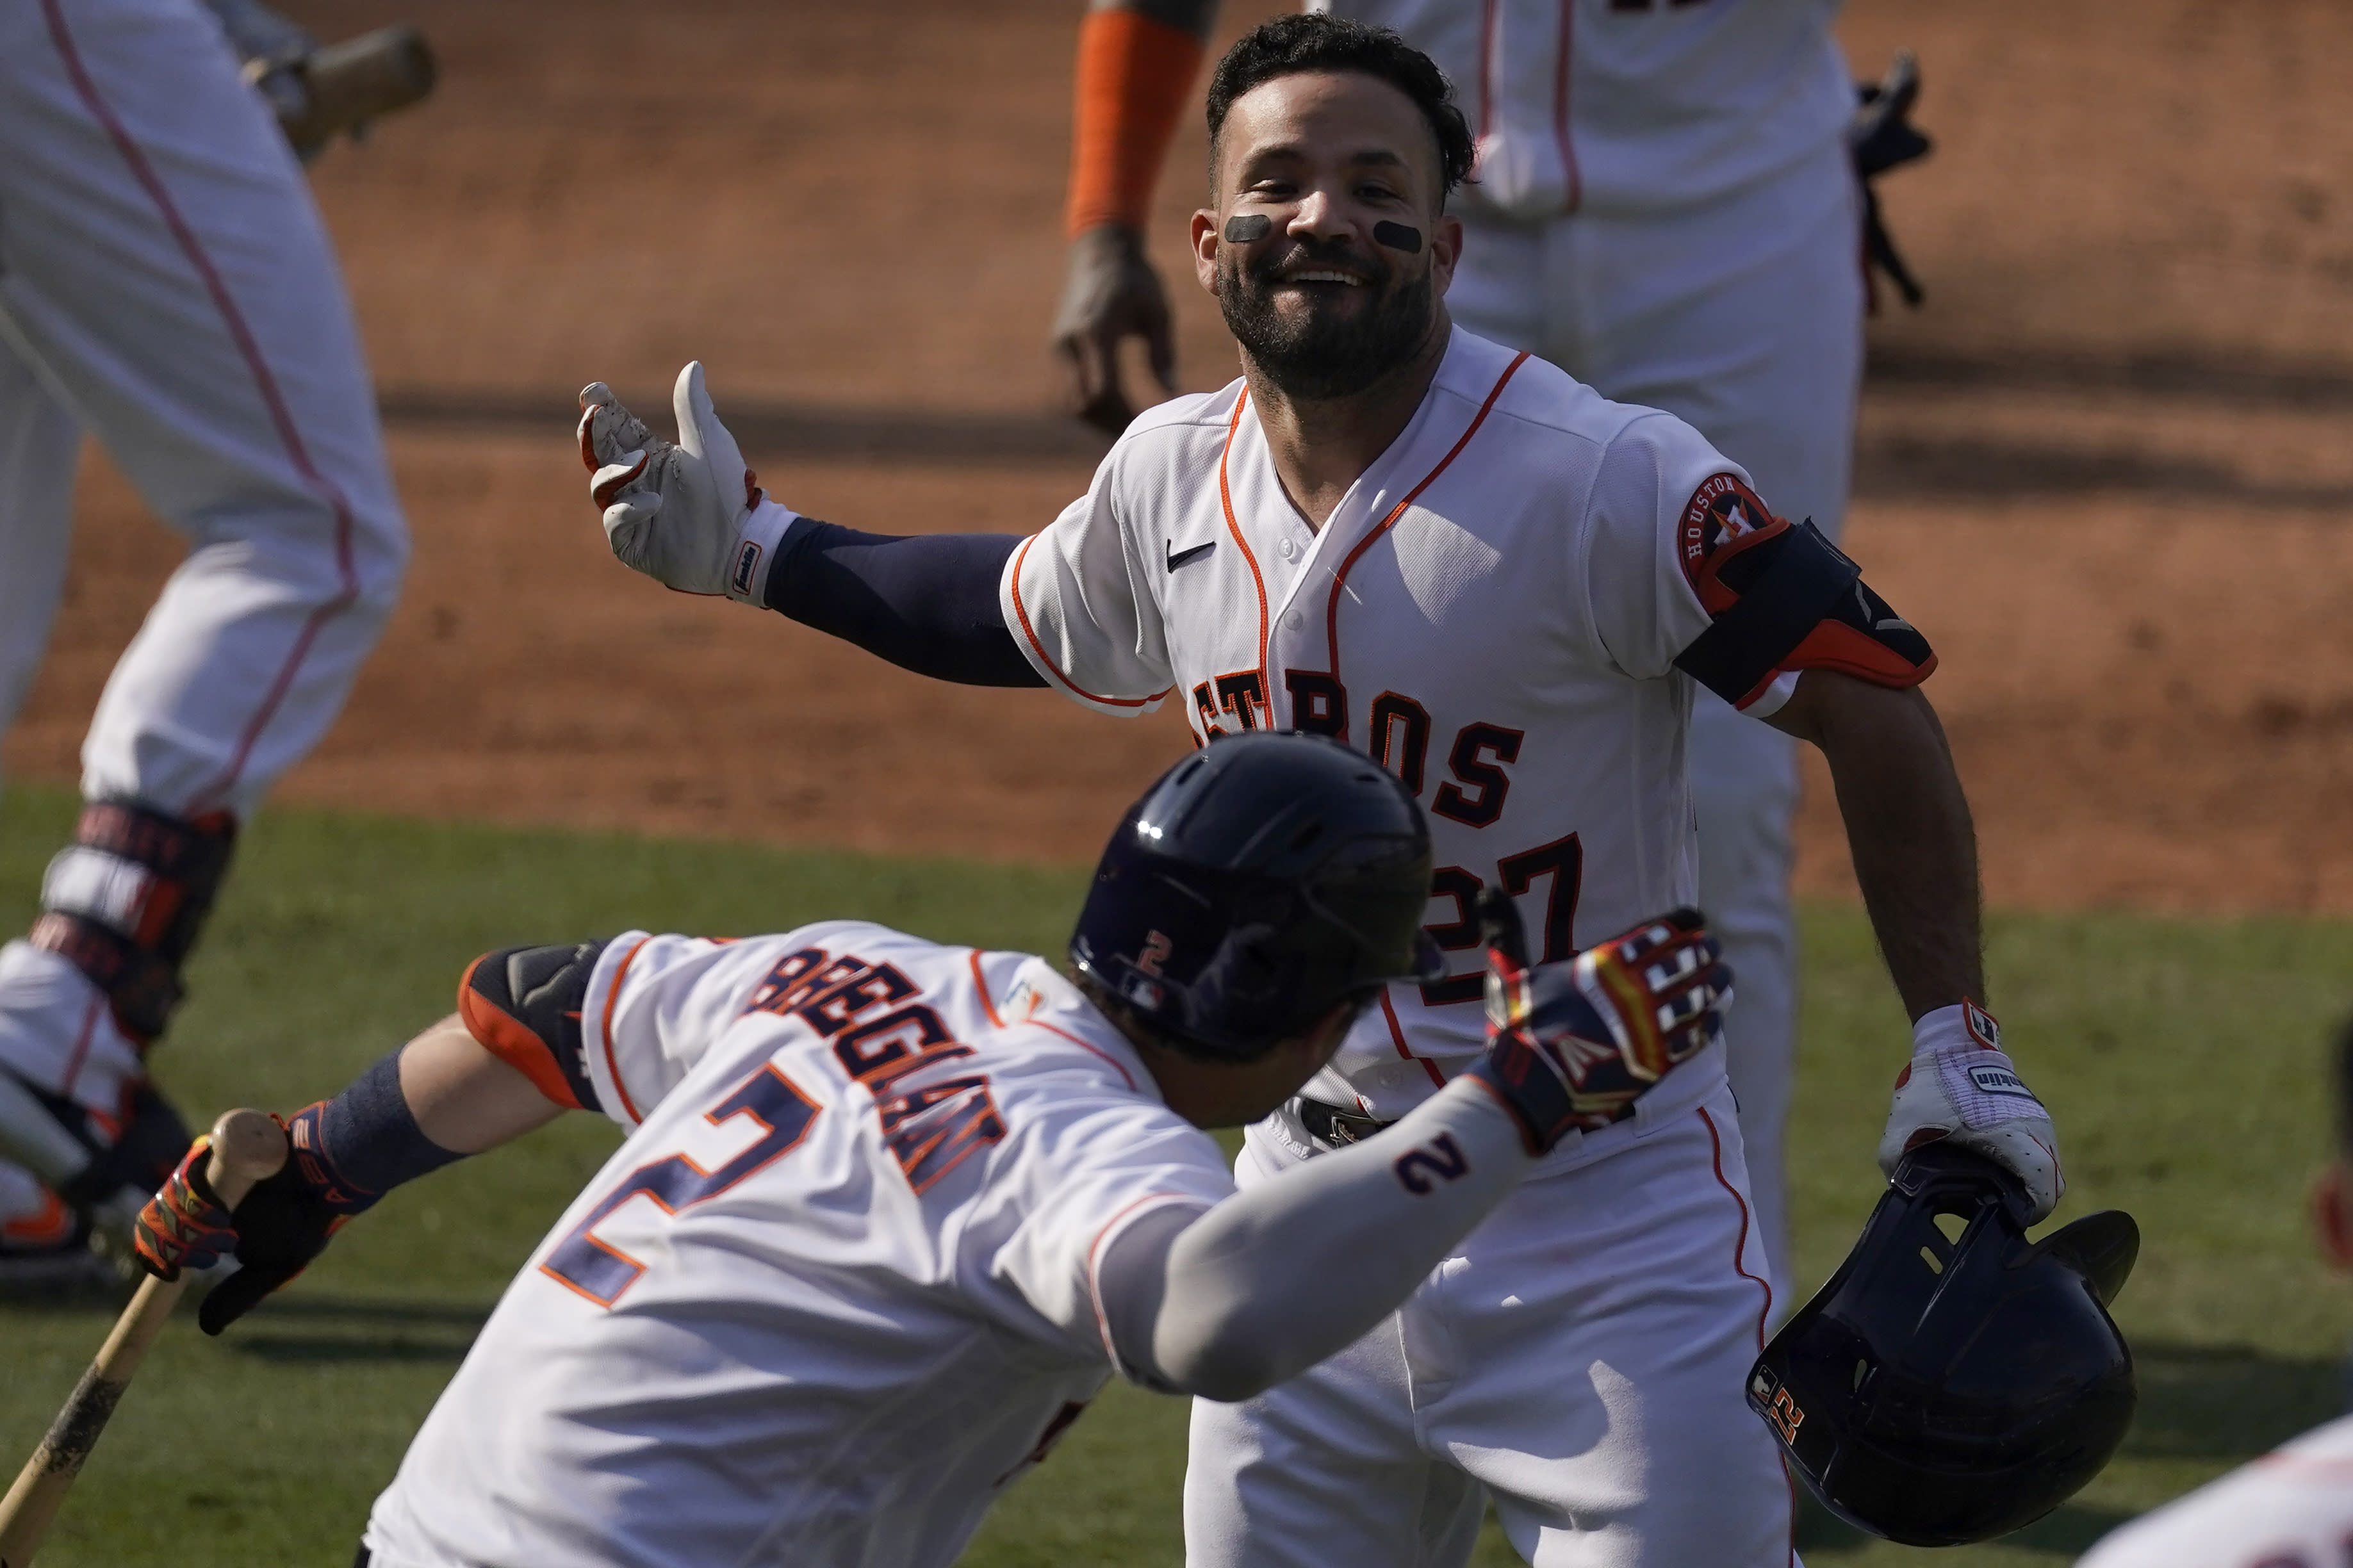 Houston Astros' Jose Altuve, top, is congratulated by Alex Bregman after hitting a two-run home run against the Oakland Athletics during the seventh inning of Game 4 of a baseball American League Division Series in Los Angeles, Thursday, Oct. 8, 2020. (AP Photo/Ashley Landis)